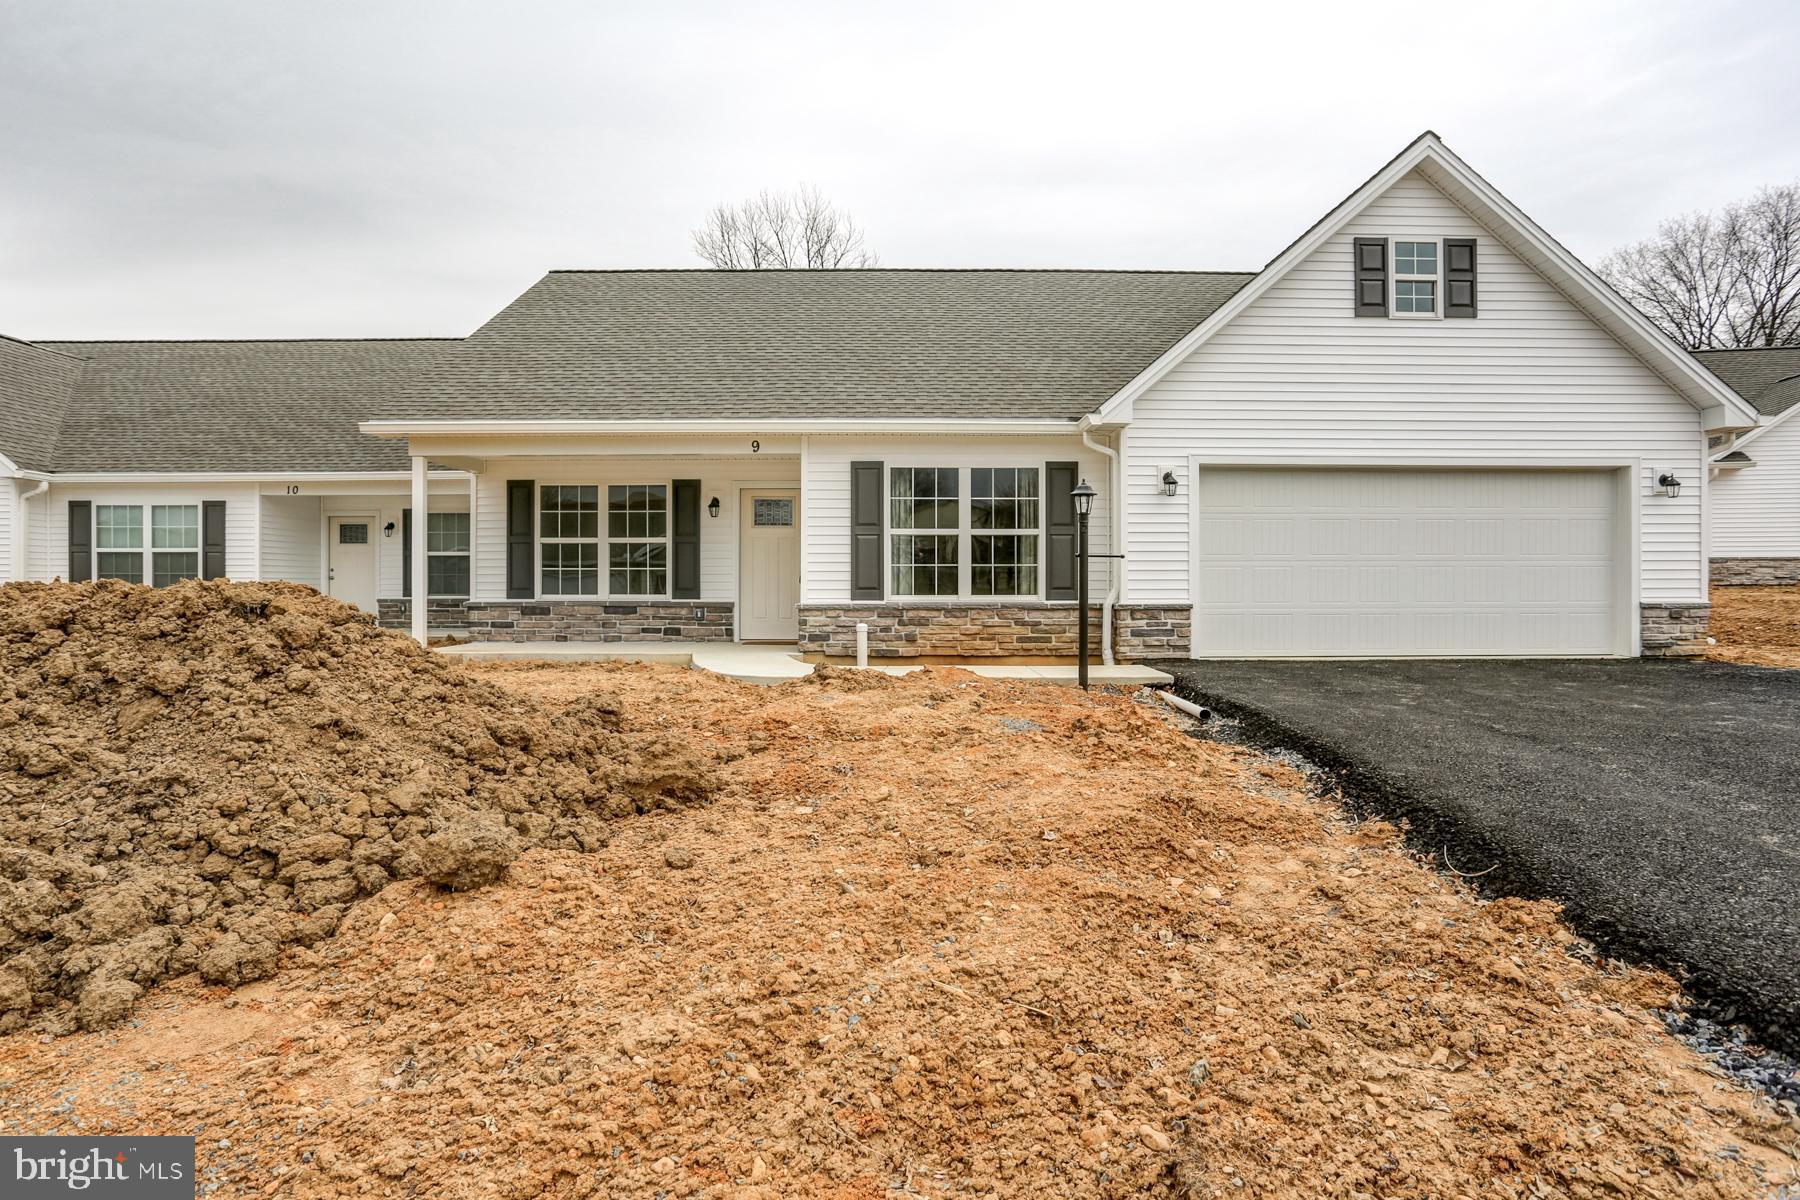 9 GROUP COURT, MOUNT HOLLY SPRINGS, PA 17065